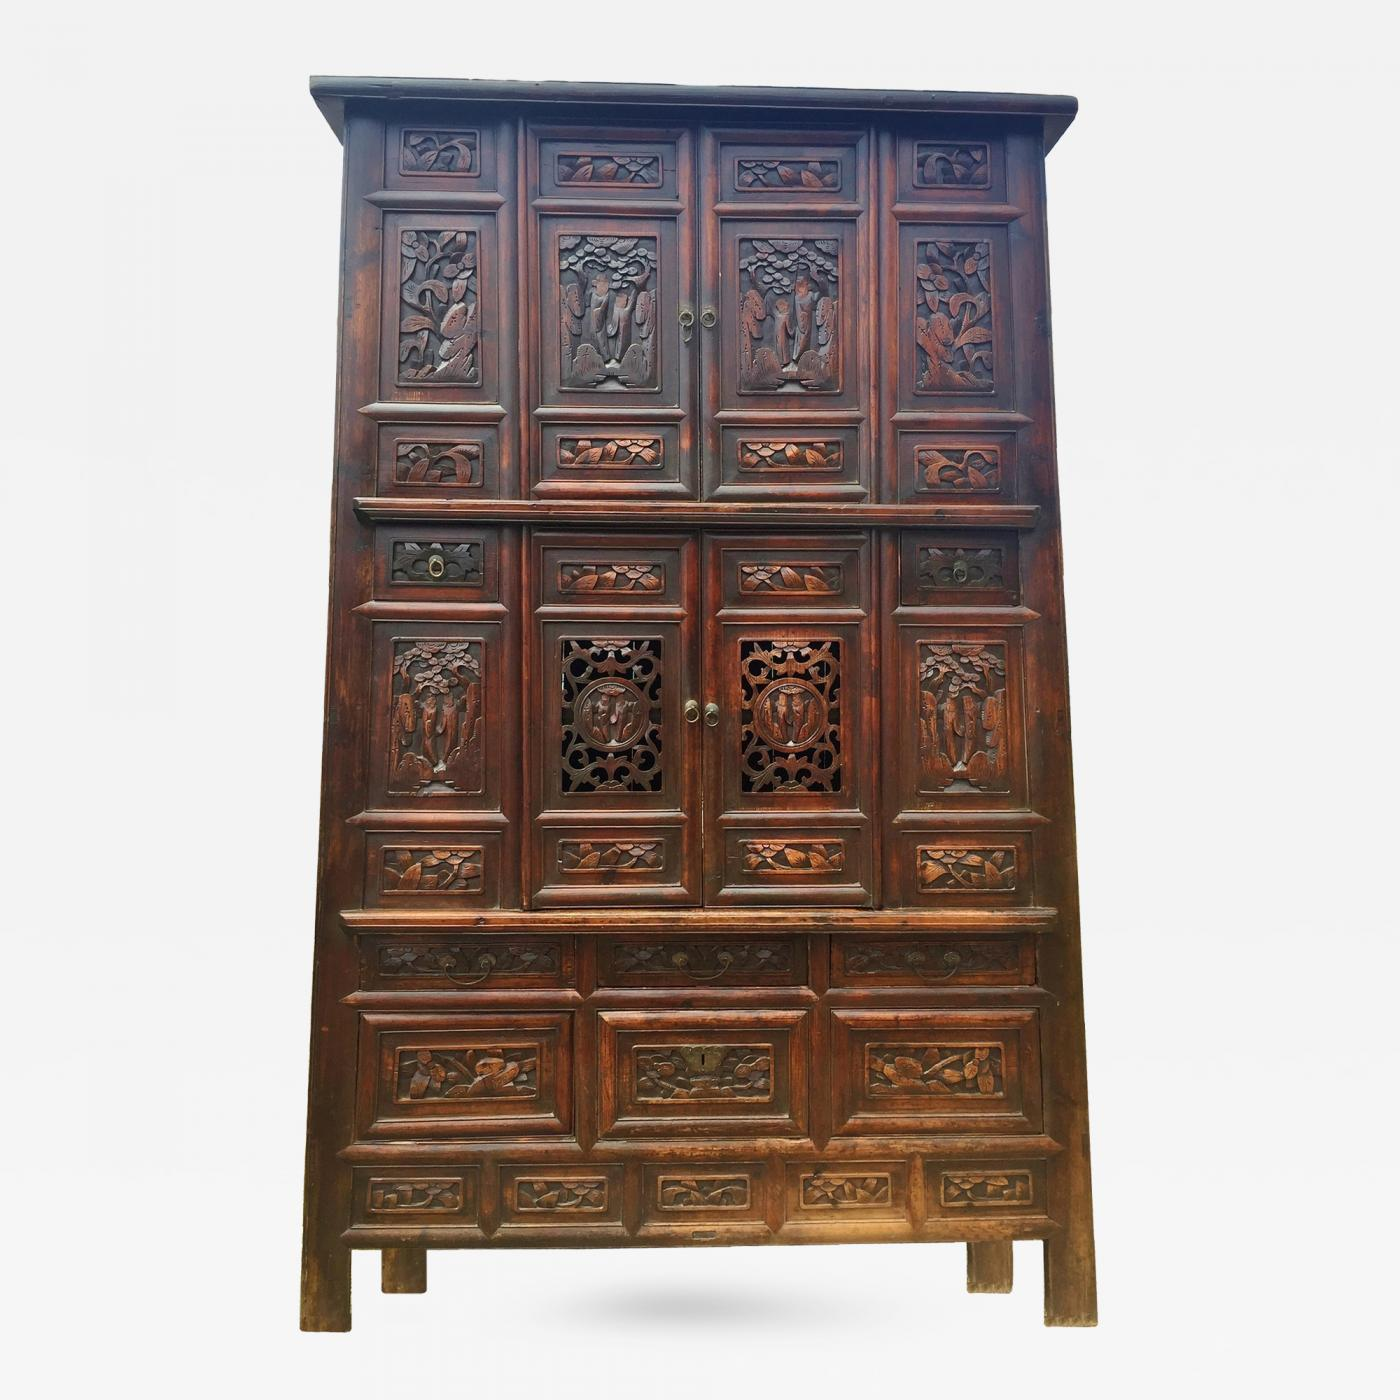 Monumental Chinese Antique Cabinet 95 Tall Fully Carved. Tap to expand - Monumental Chinese Antique Cabinet, 95